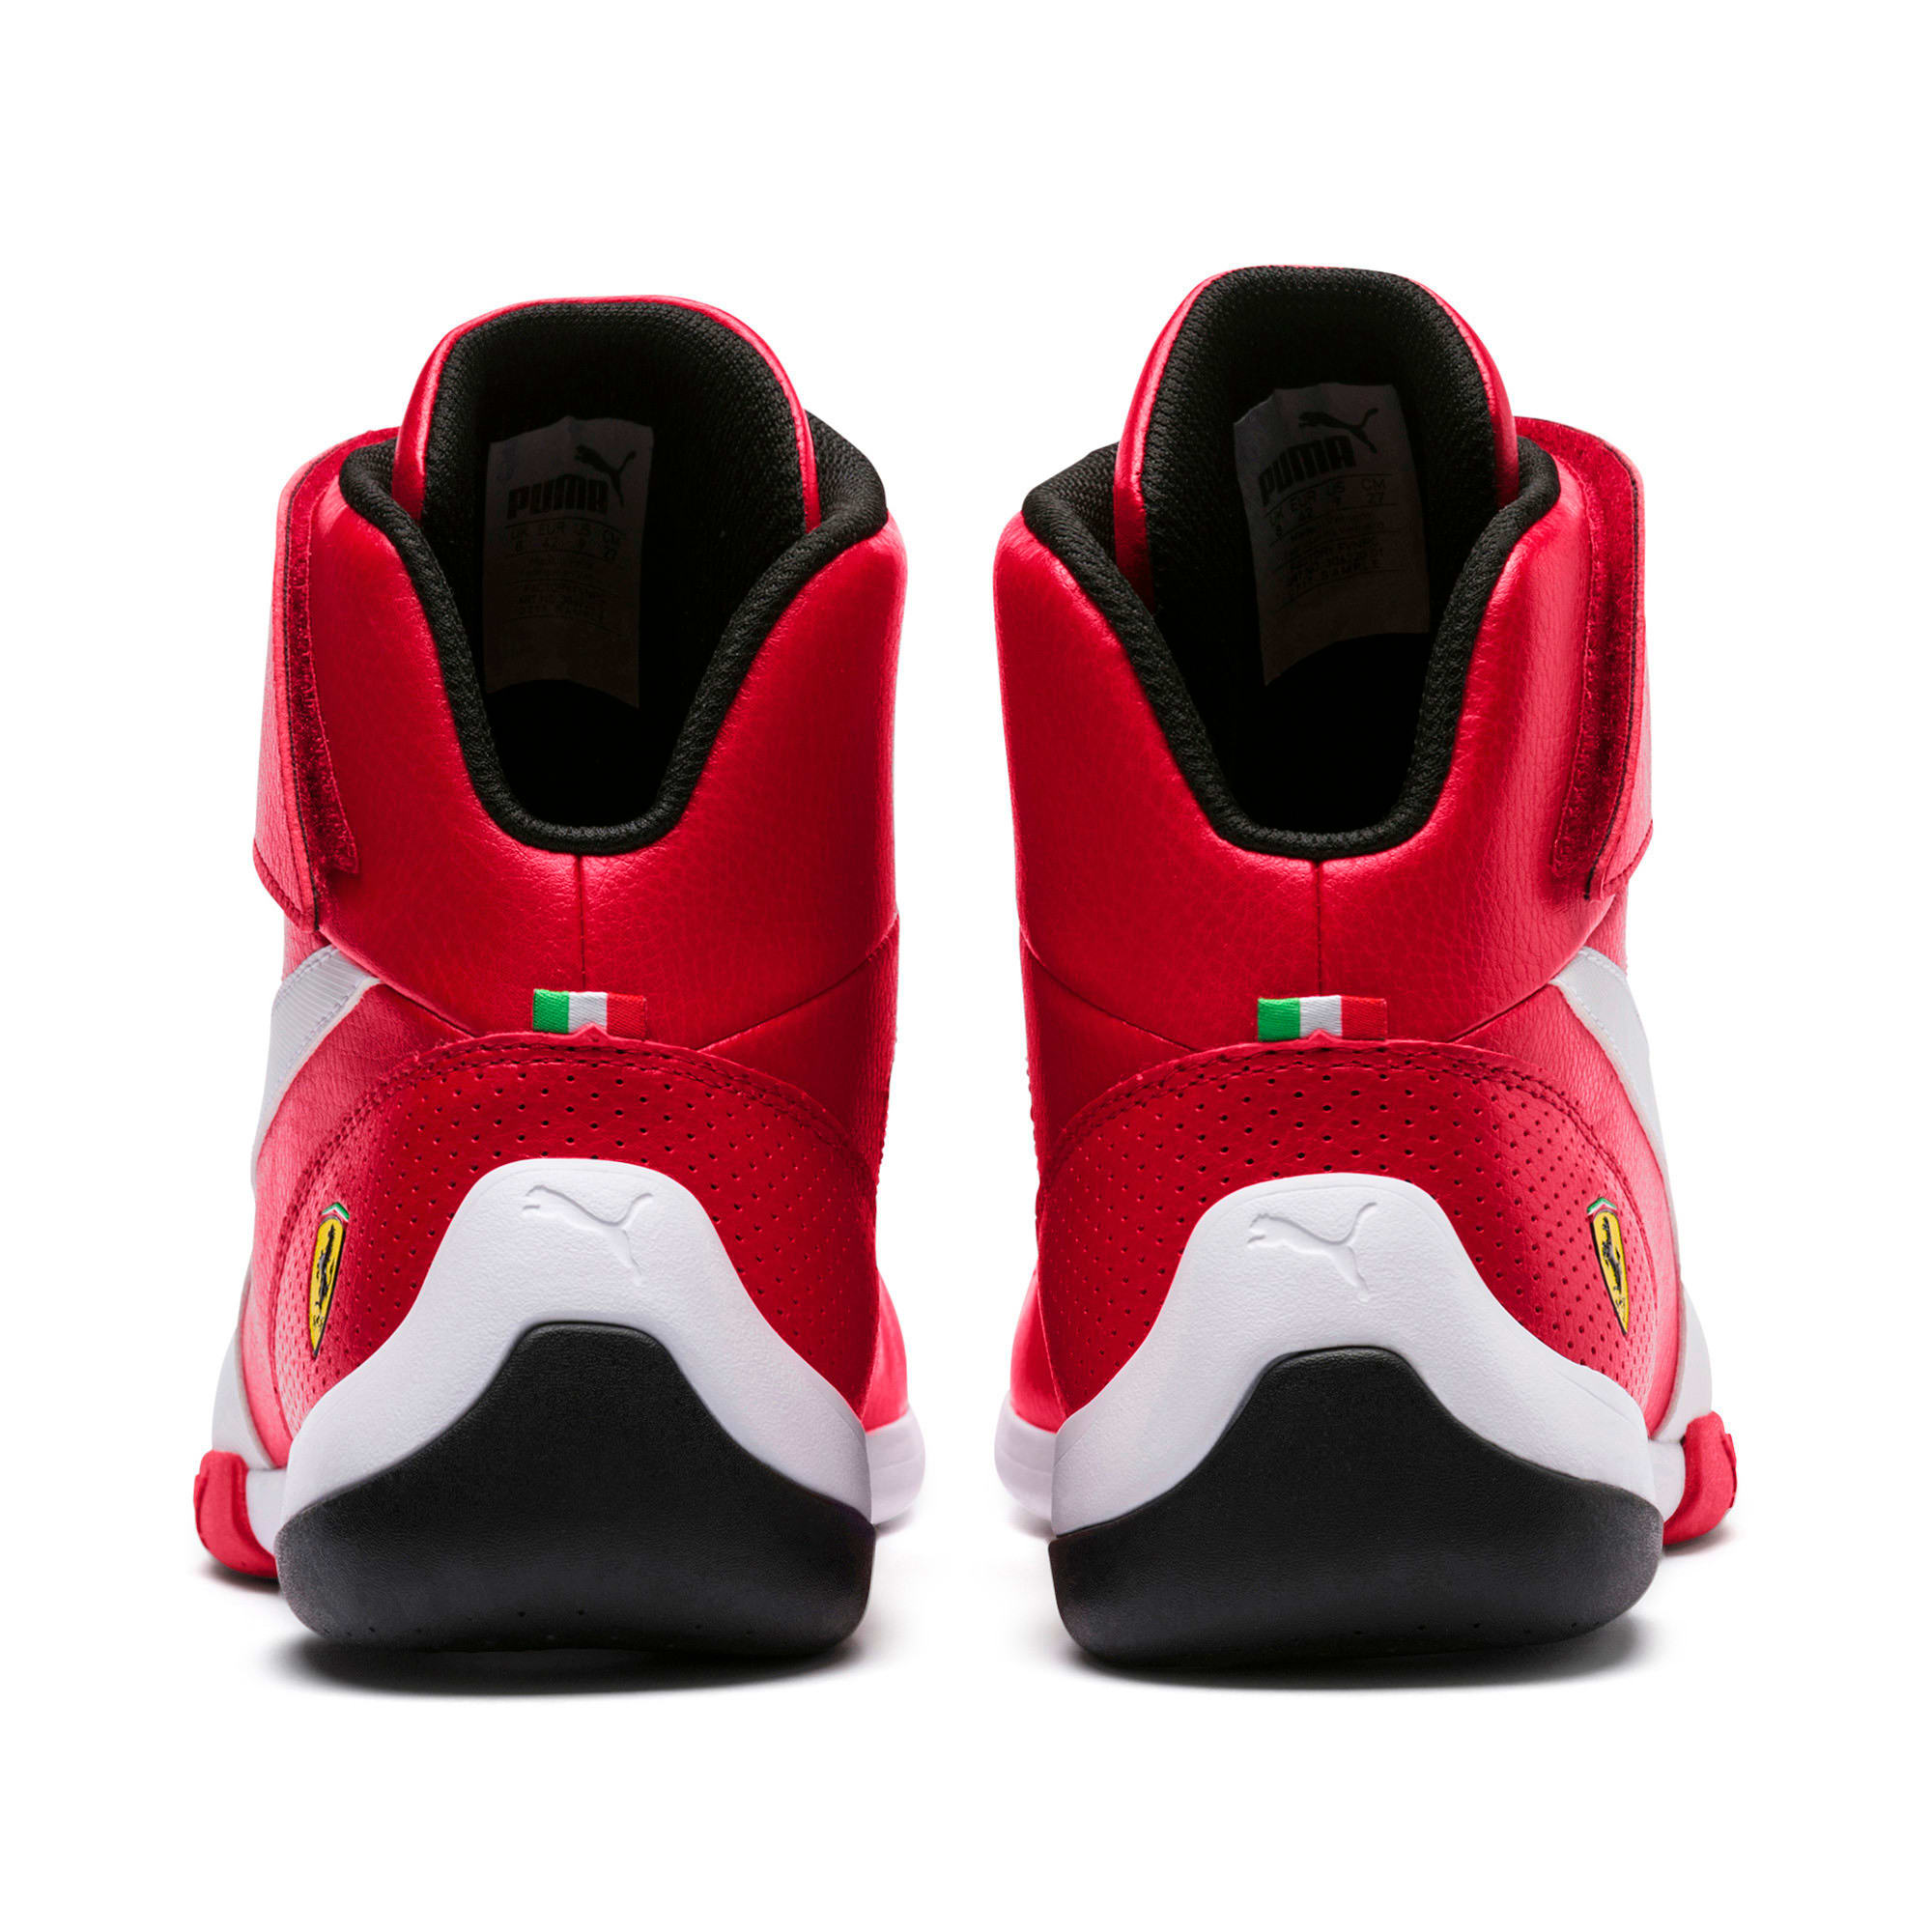 Scuderia Kart Iii Shoes Hi Top Cat Mid Ferrari PiXukZO